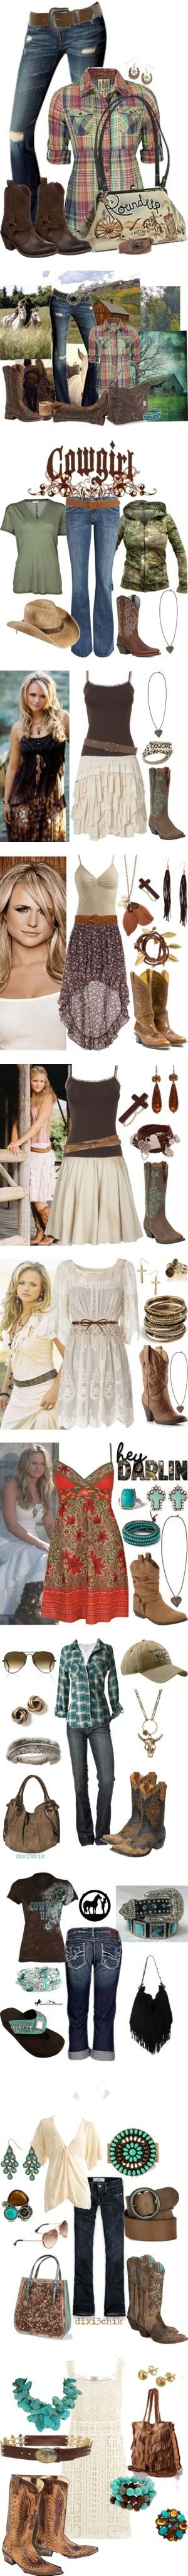 Interesting Cowgirl style mash up. Maybe I should try out a few of these in the fall/spring since I love boots.